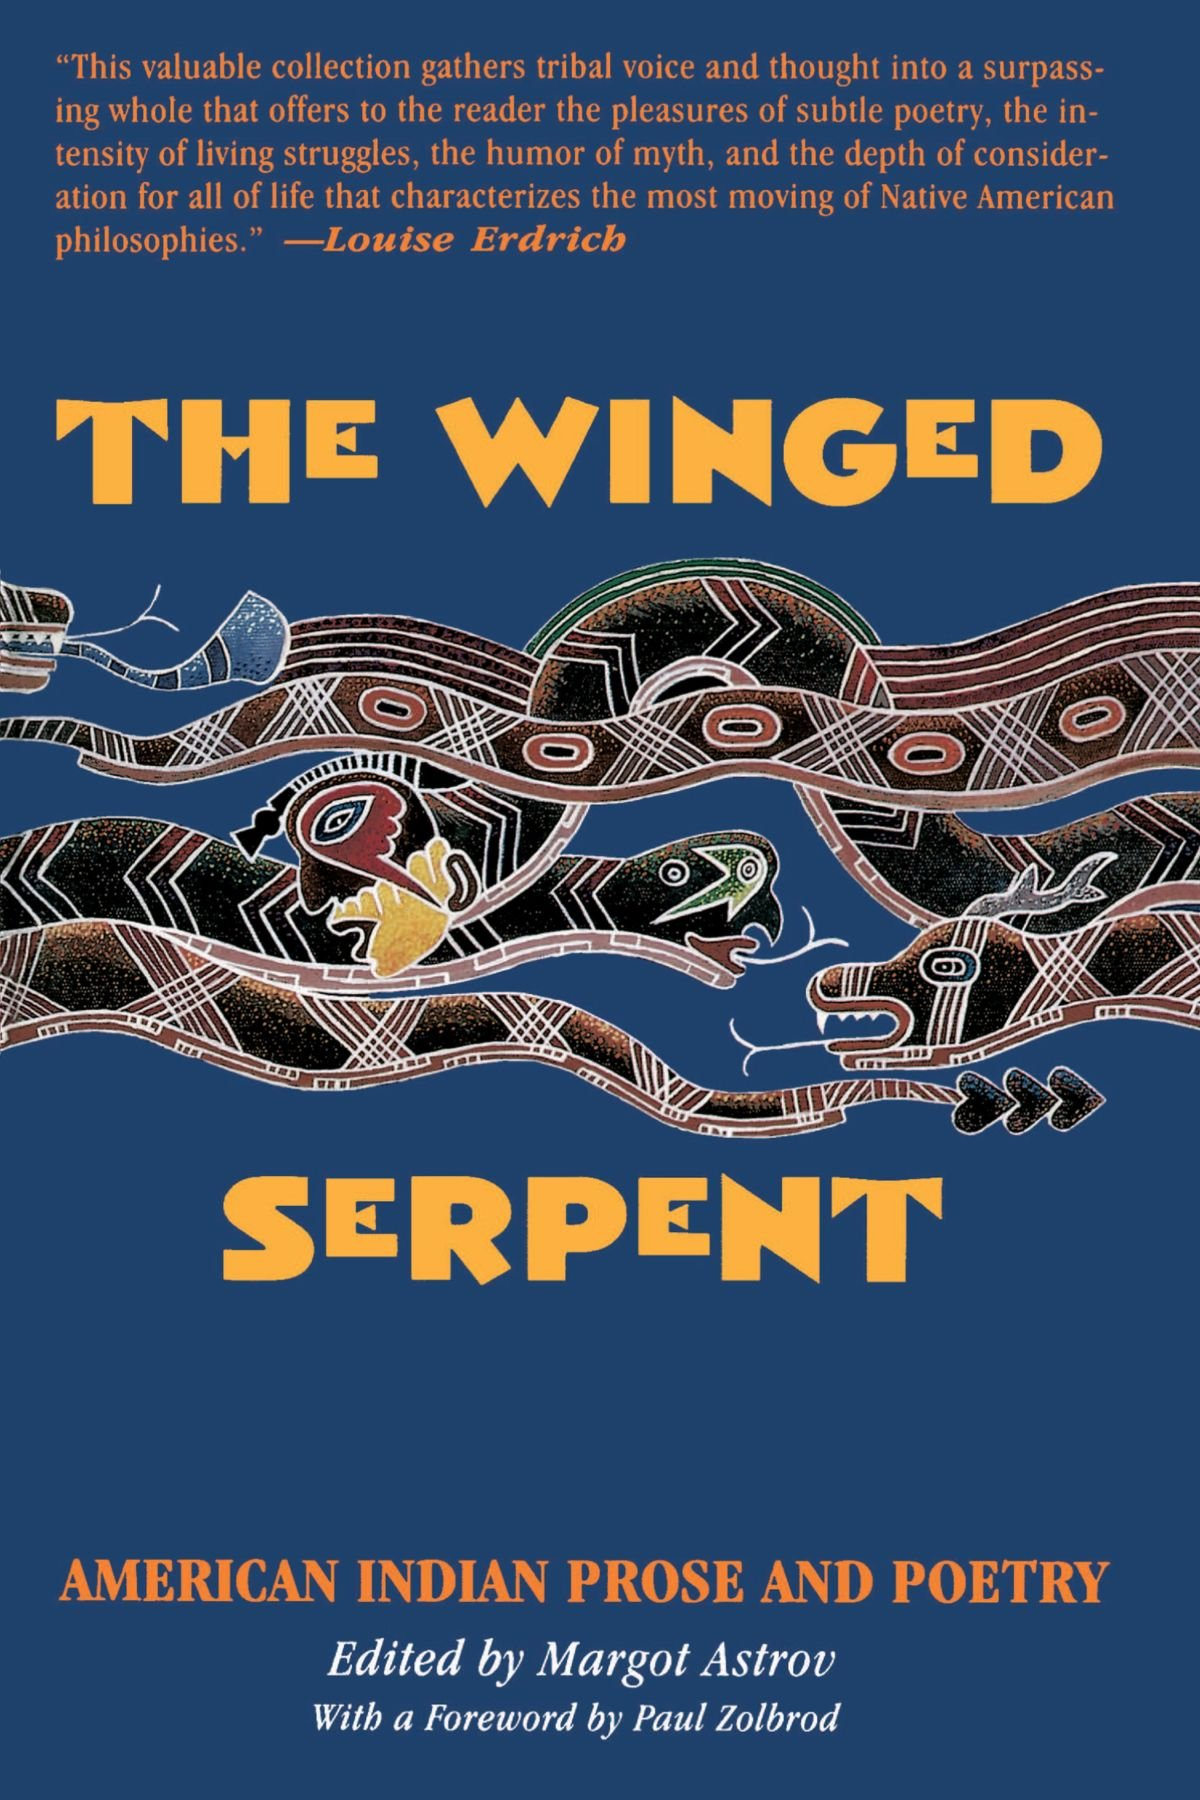 The Winged Serpent: American Indian Prose and Poetry